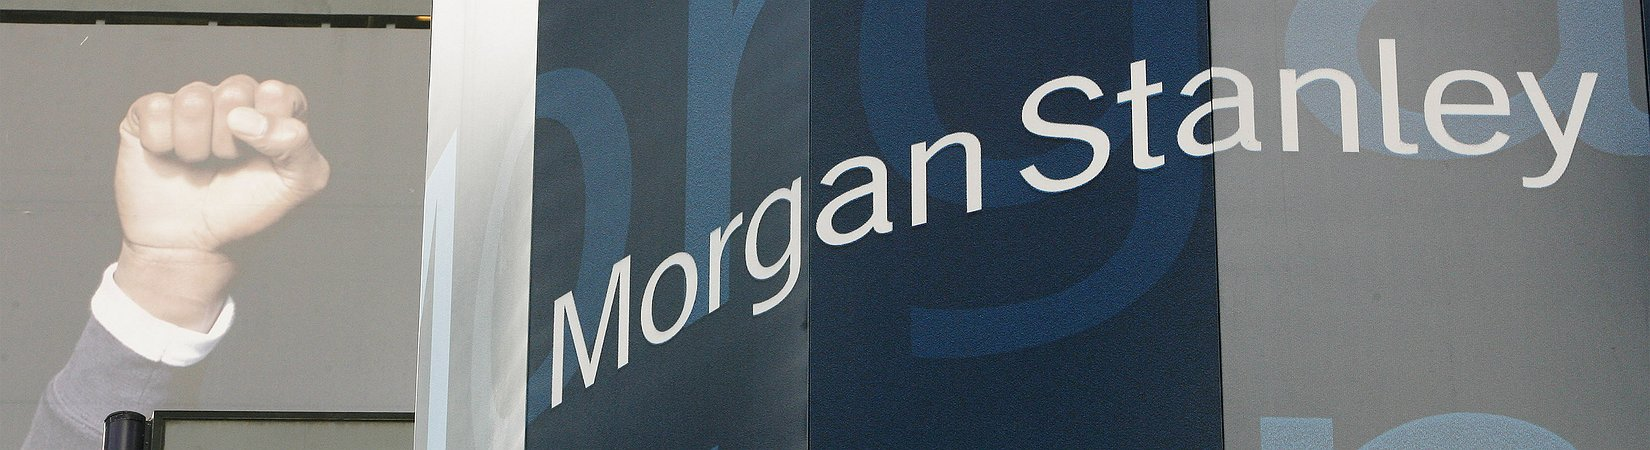 Morgan Stanley's Q1 profit surges on strong results across the board